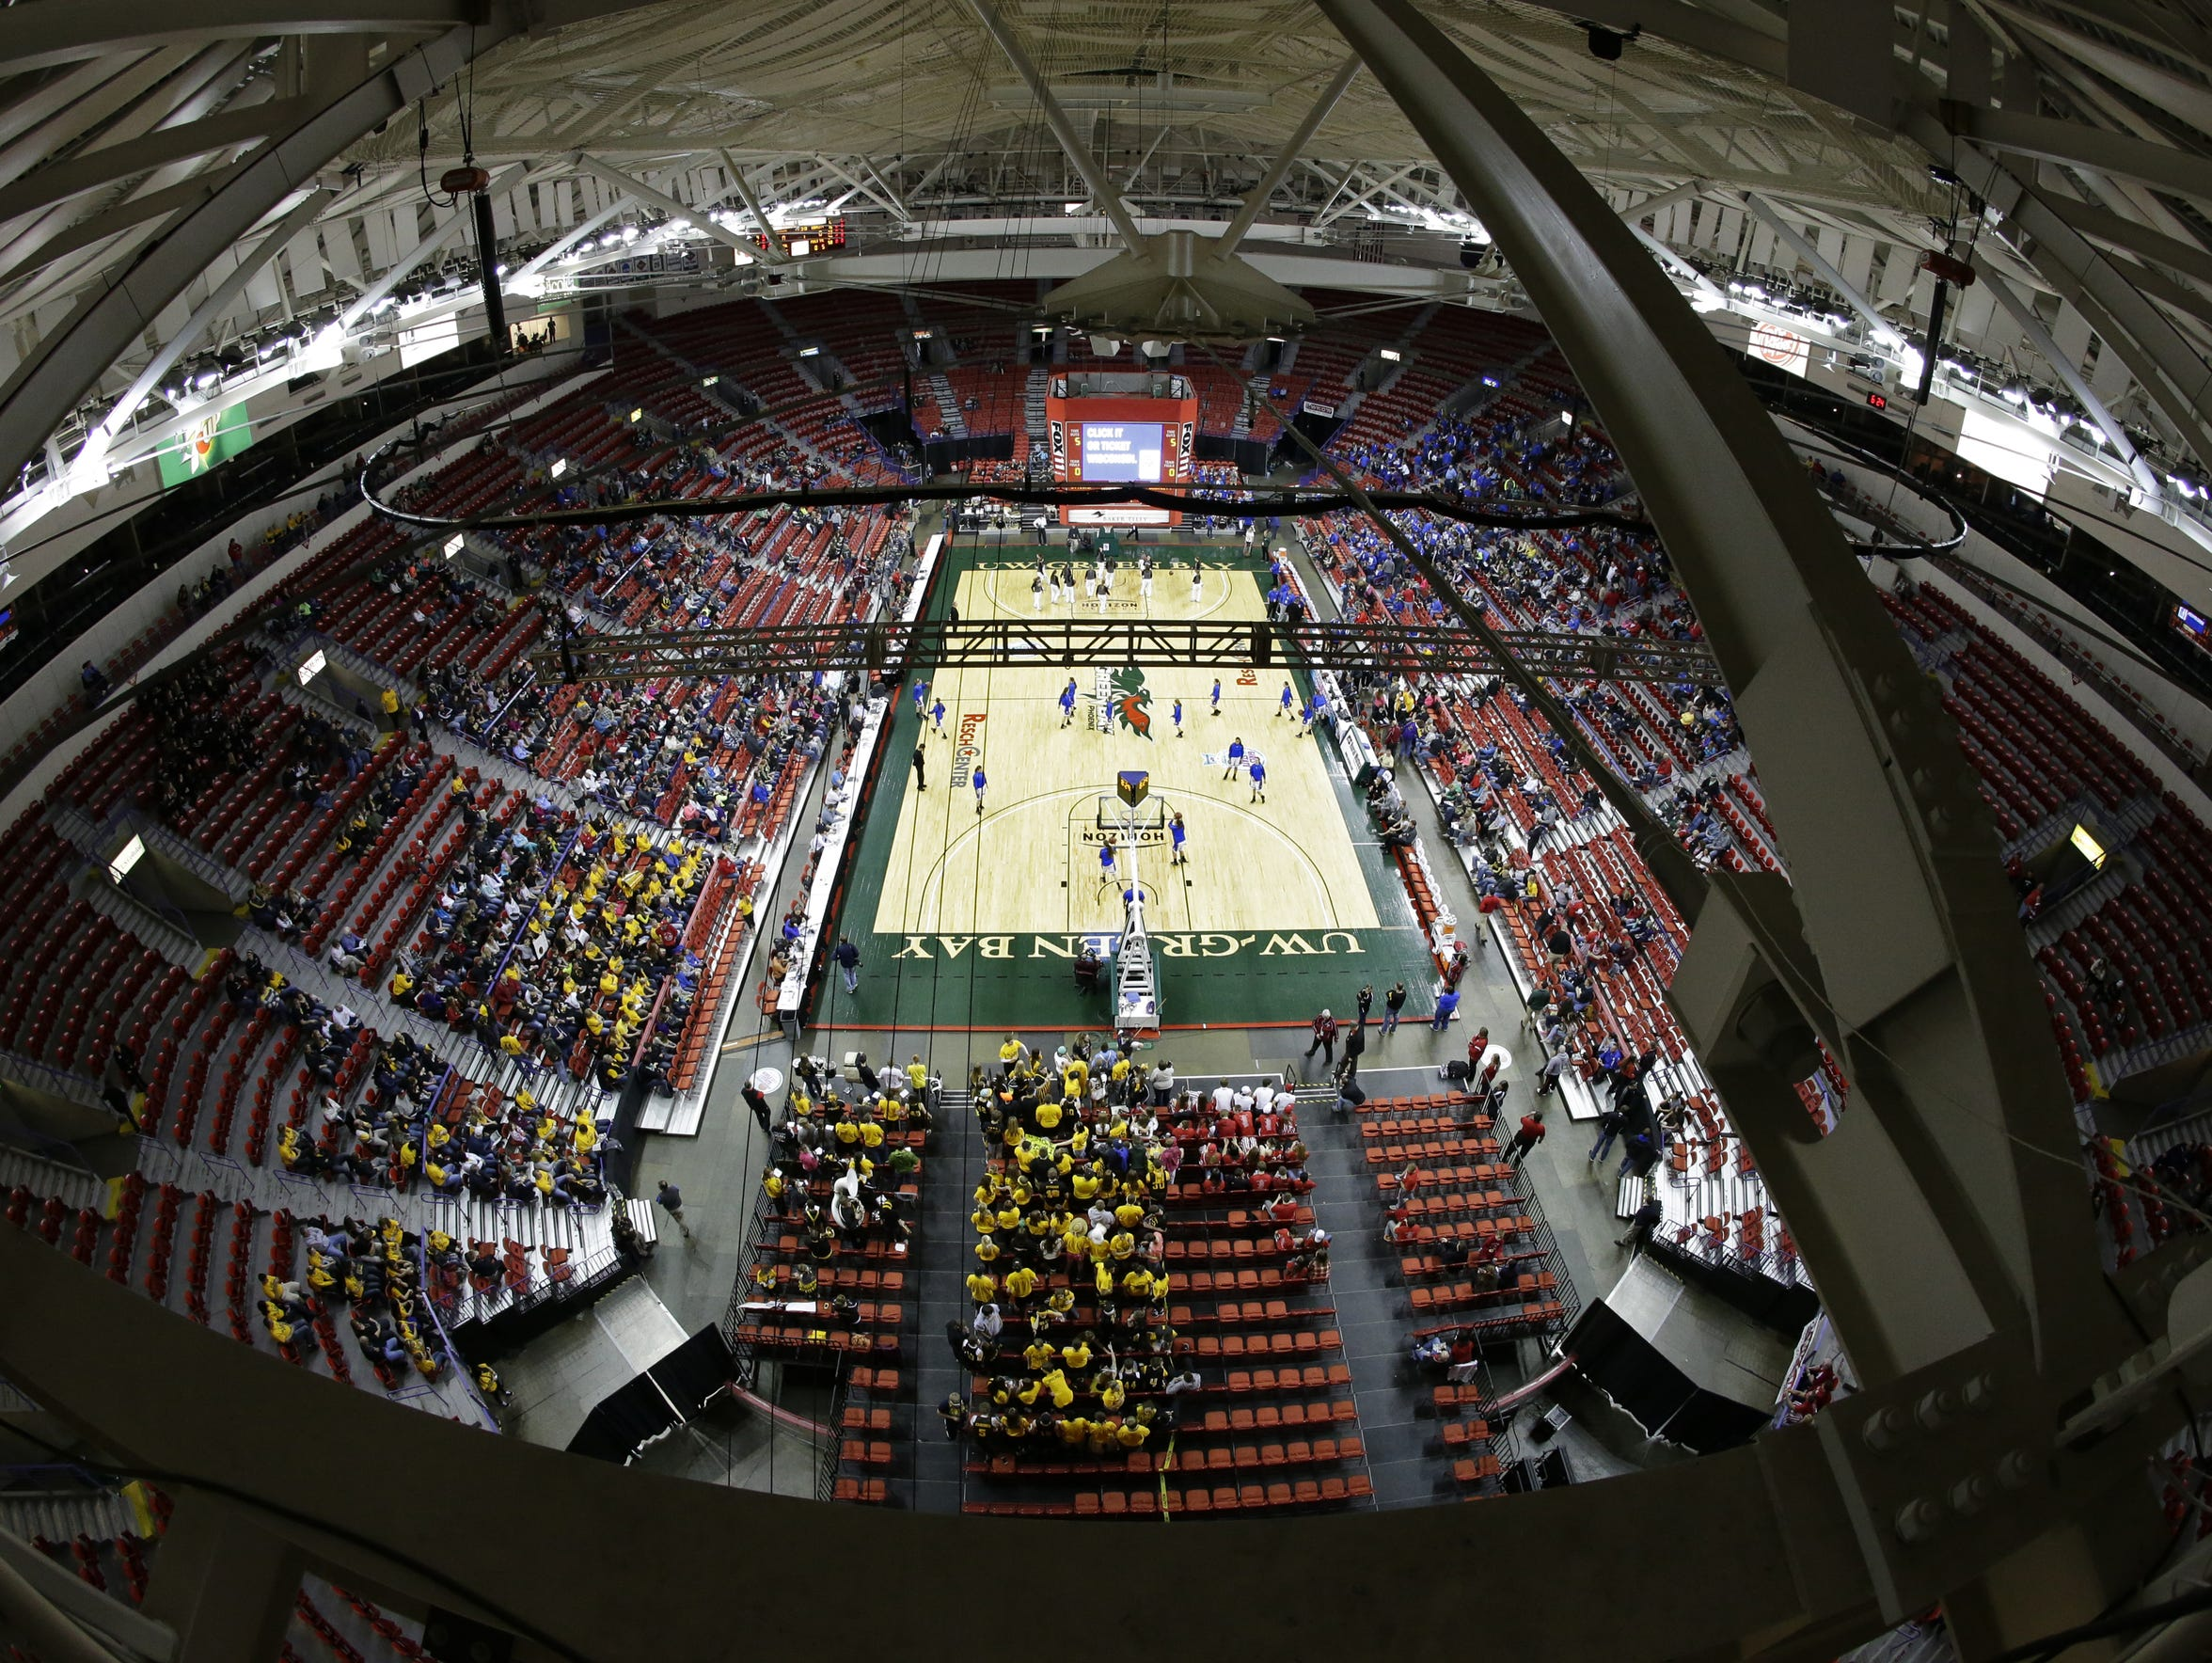 A view from the Resch Center rafters of the 2015 WIAA